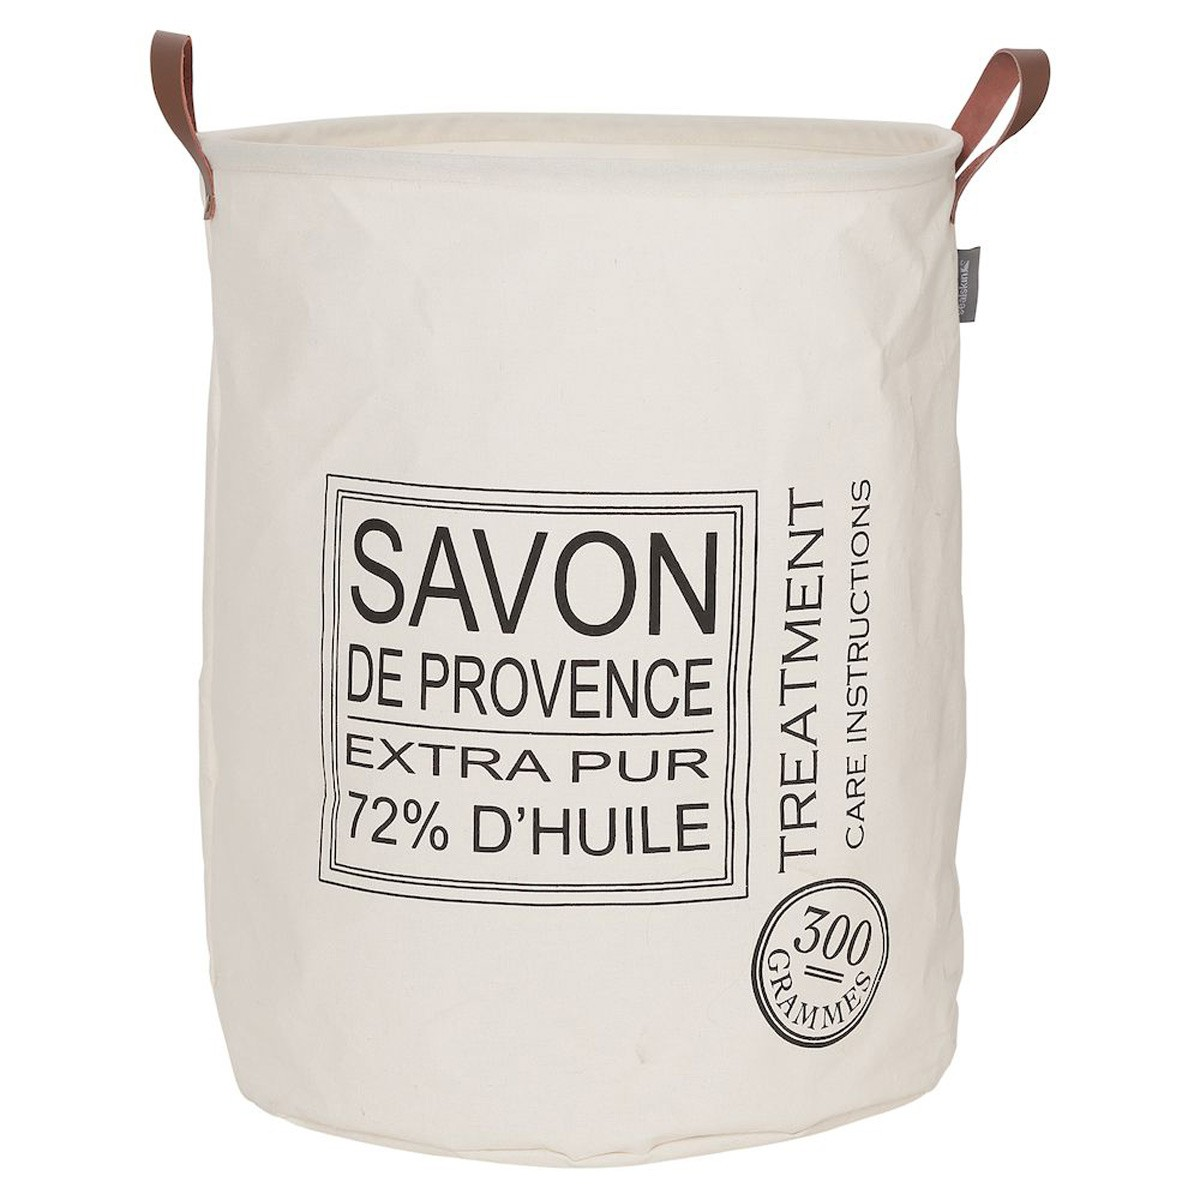 Καλάθι Απλύτων SealSkin Savon De Provence Laundry Bag